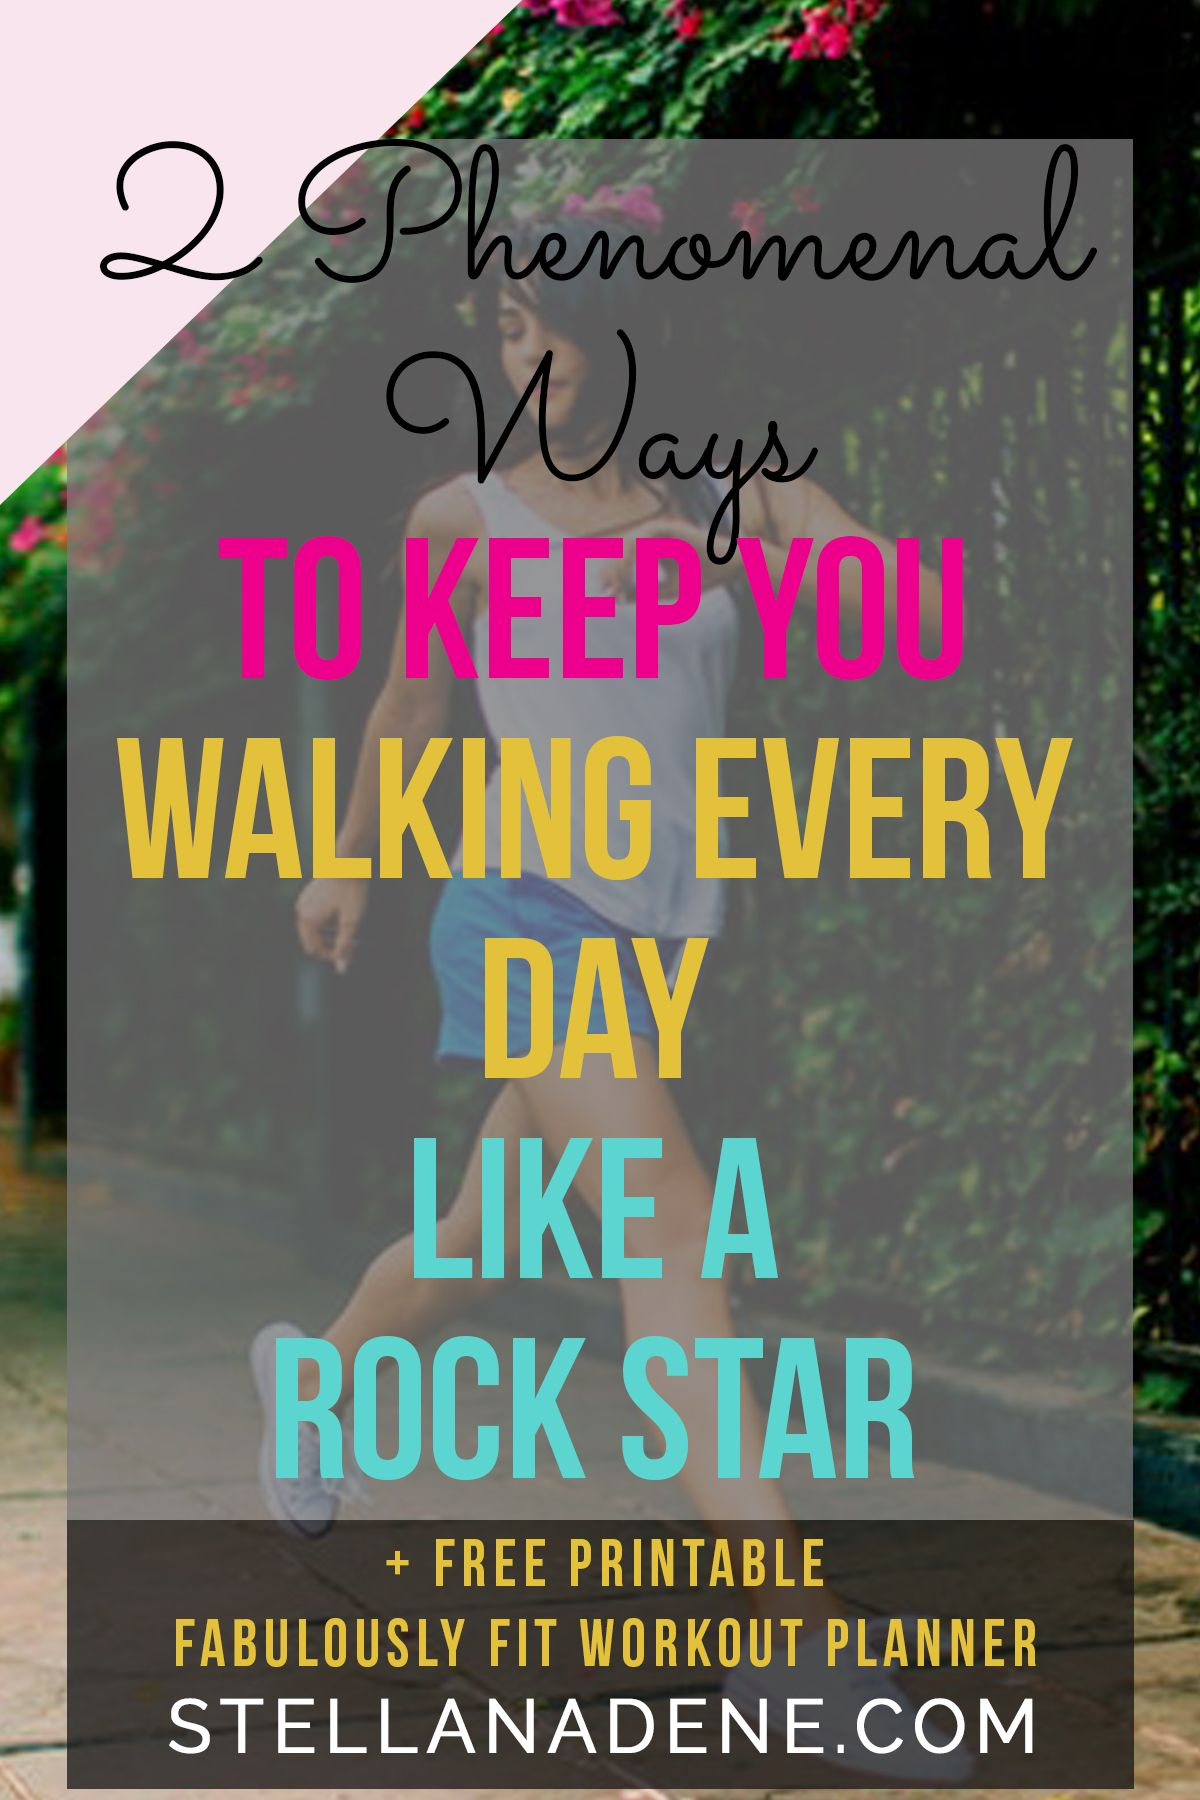 2 ridiculously easy ways to get you walking every day like